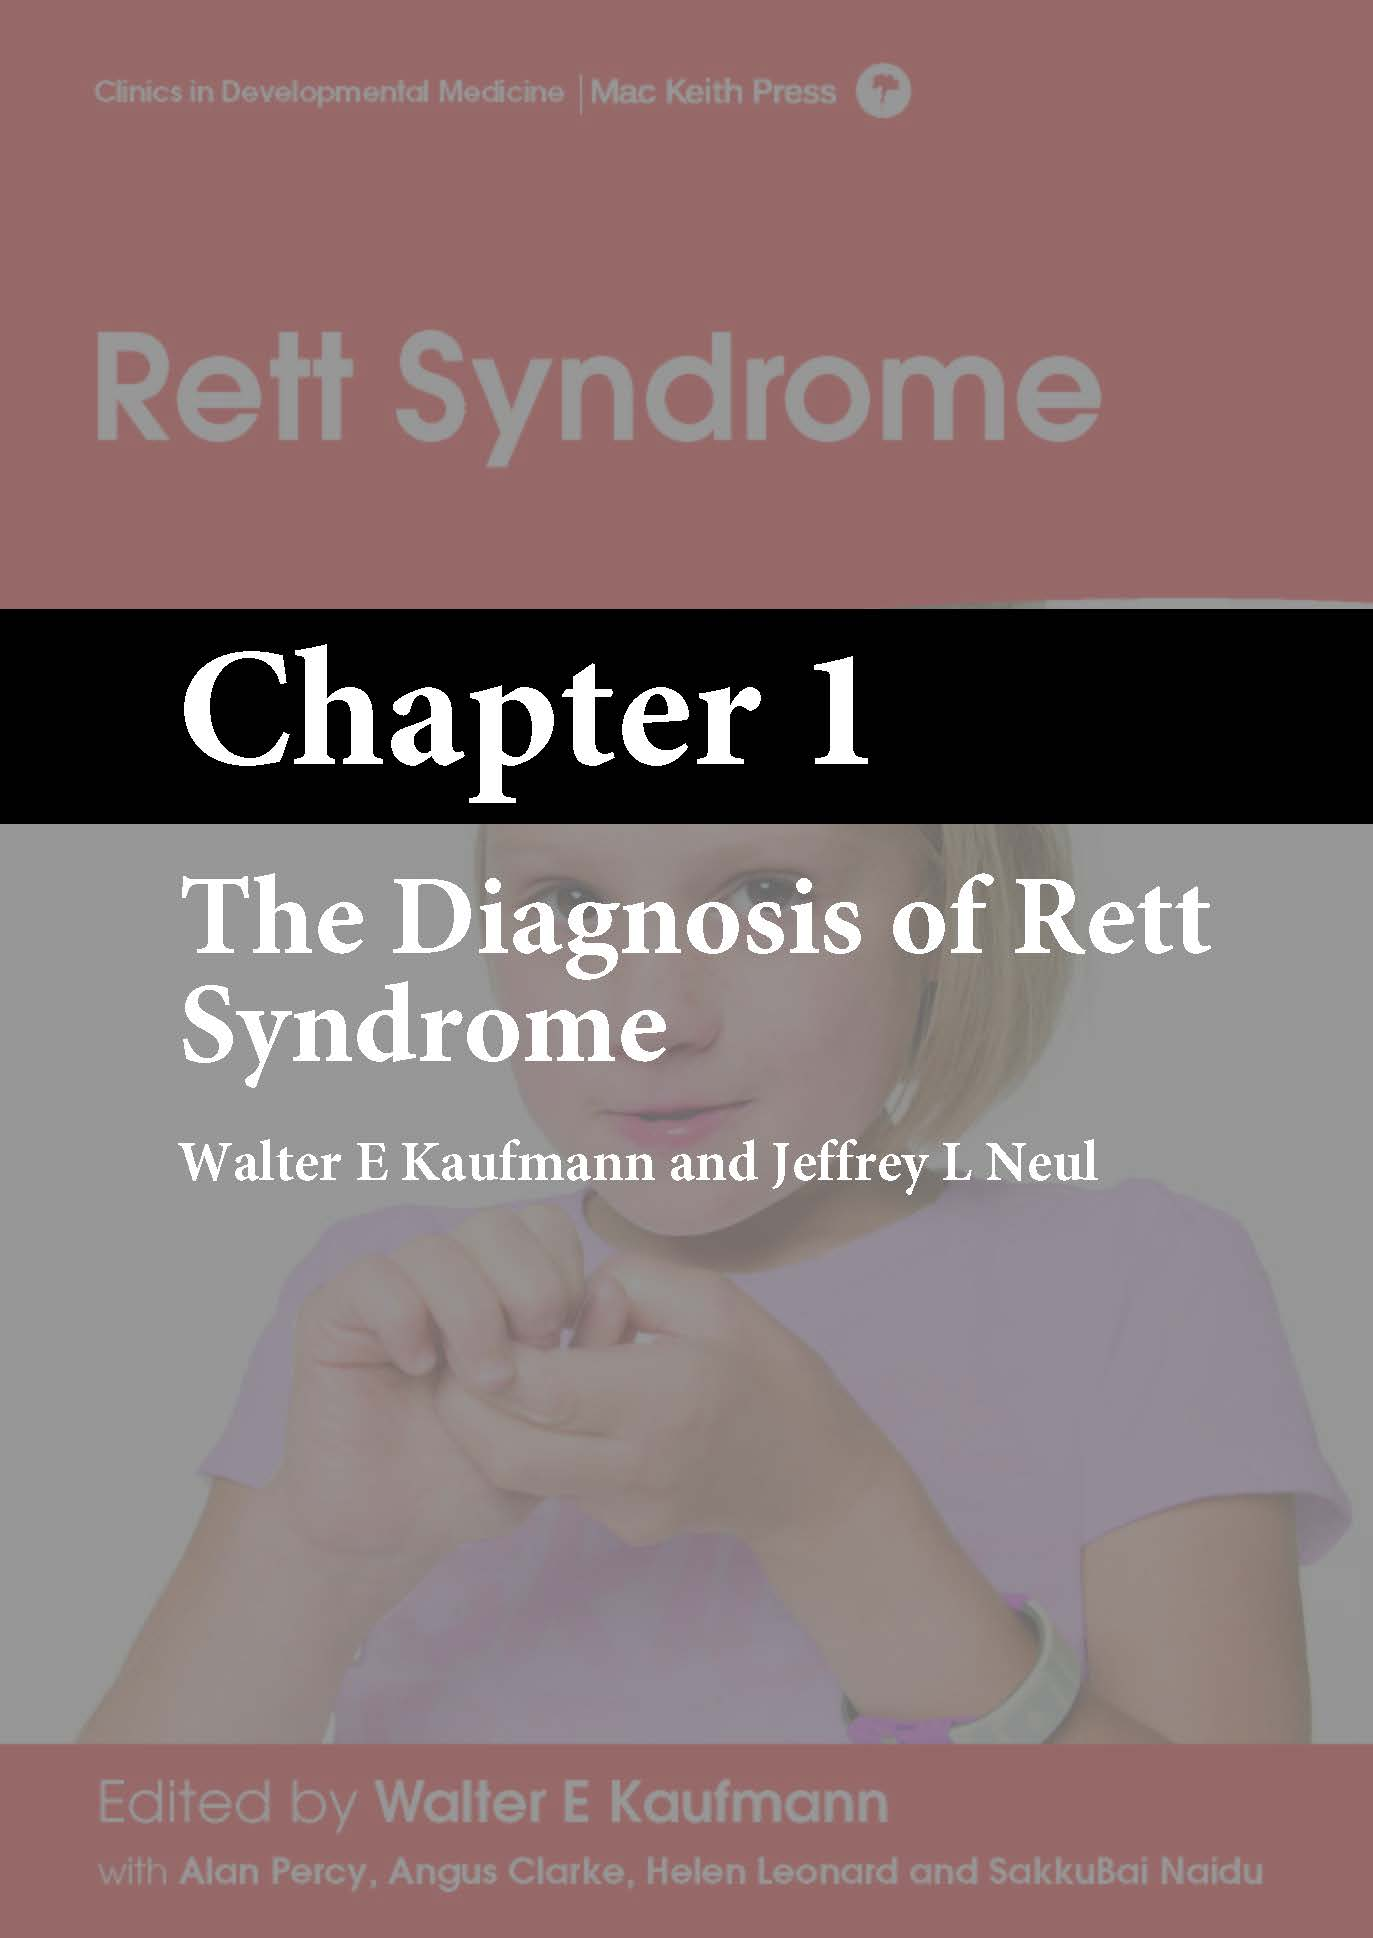 Rett Syndrome, Kaufmann, Chapter 1 cover